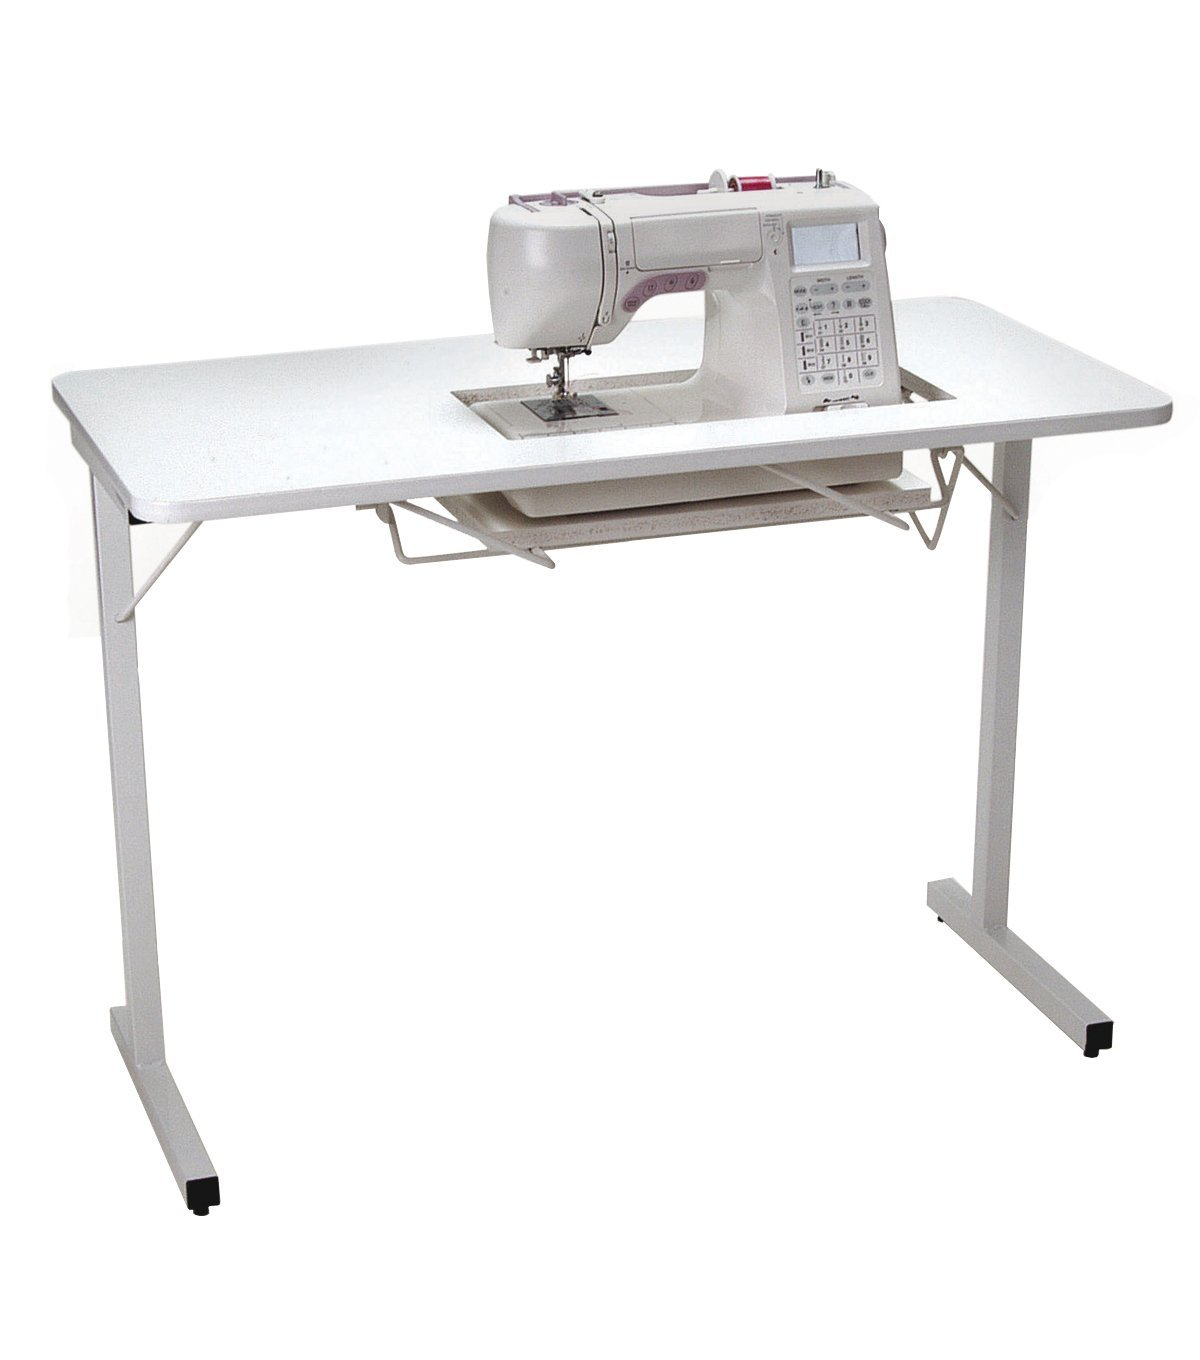 Best sewing table: Is space a problem for you? Well, make use of this option